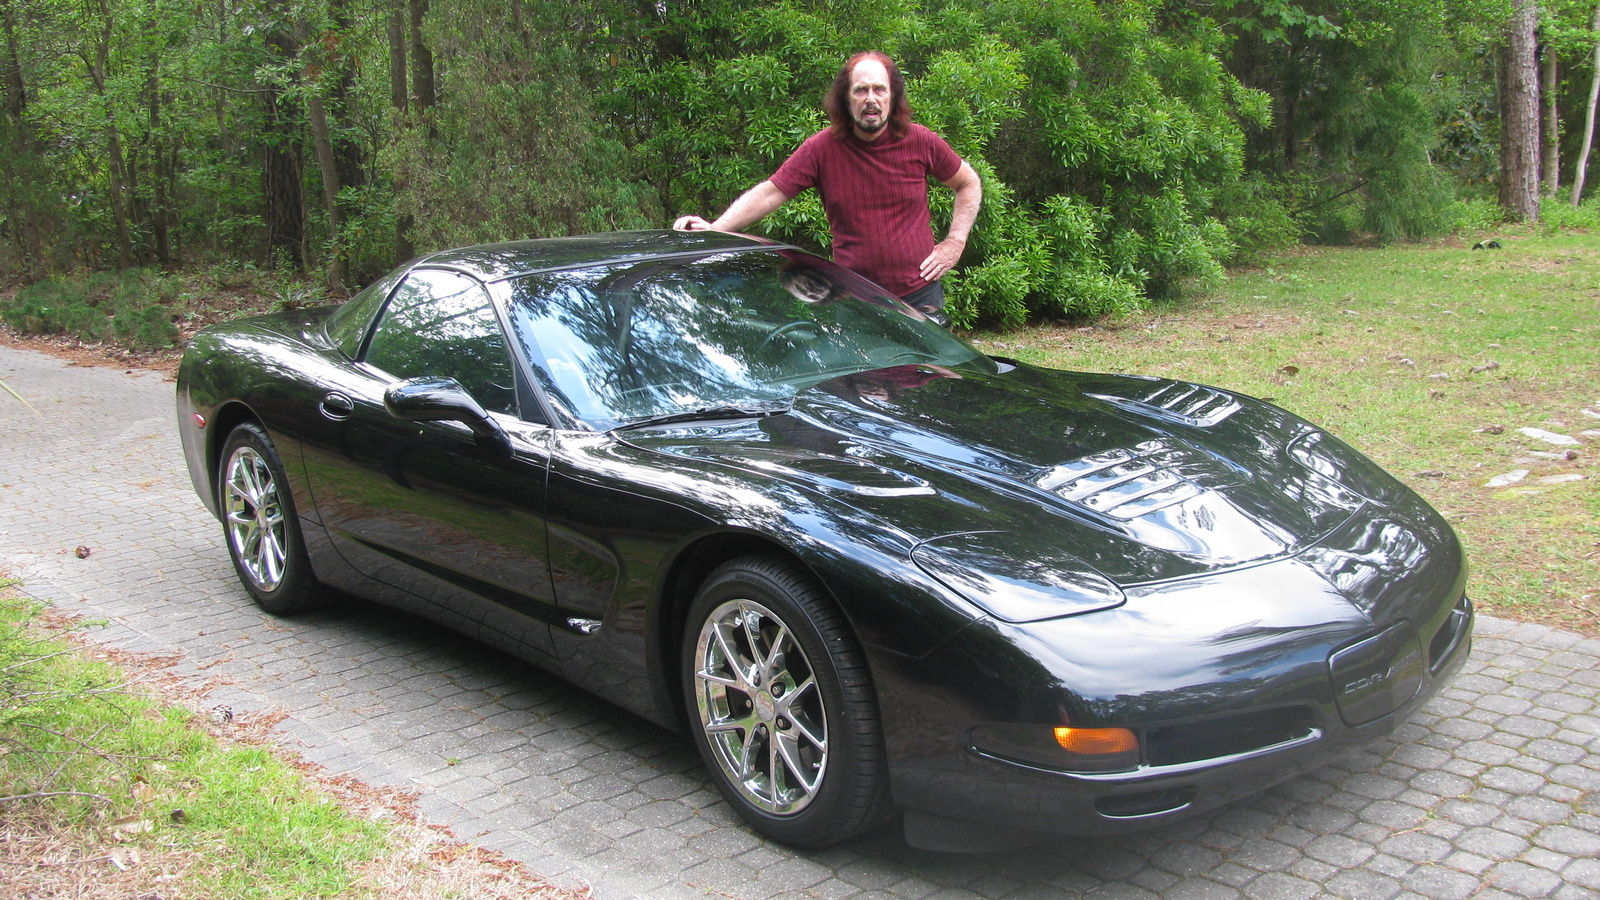 Chevrolet Corvette Questions - why does my left front break suddenly